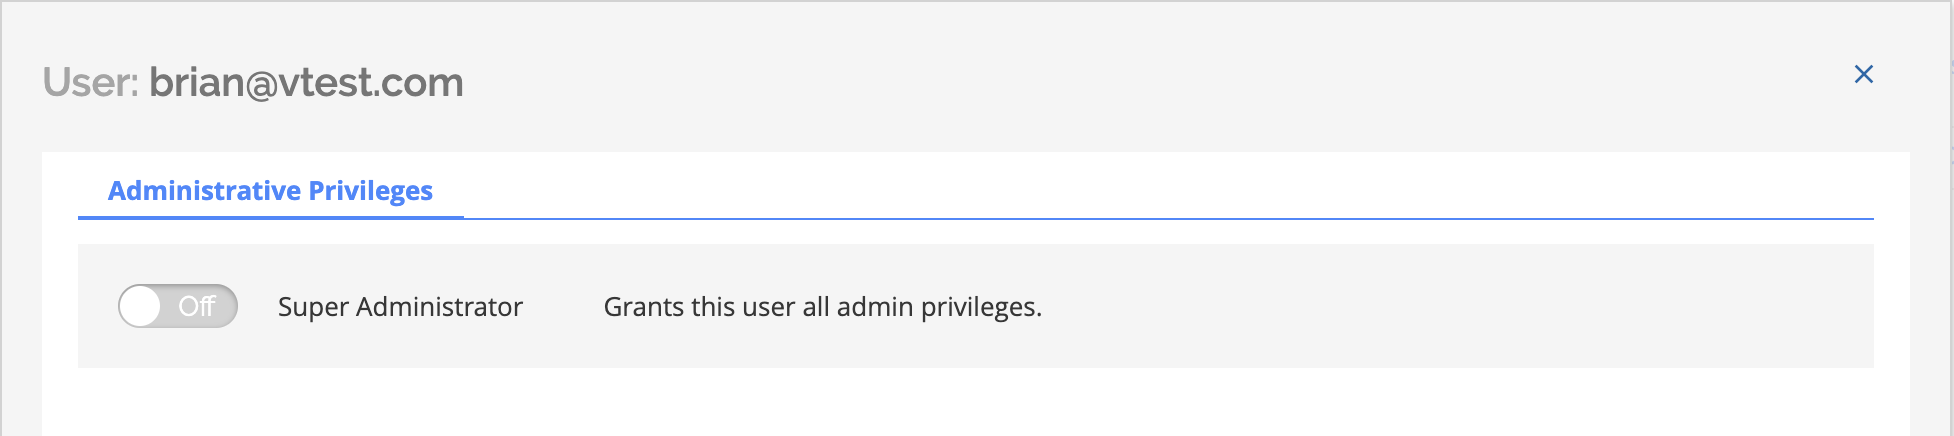 Administrative privileges toggle off